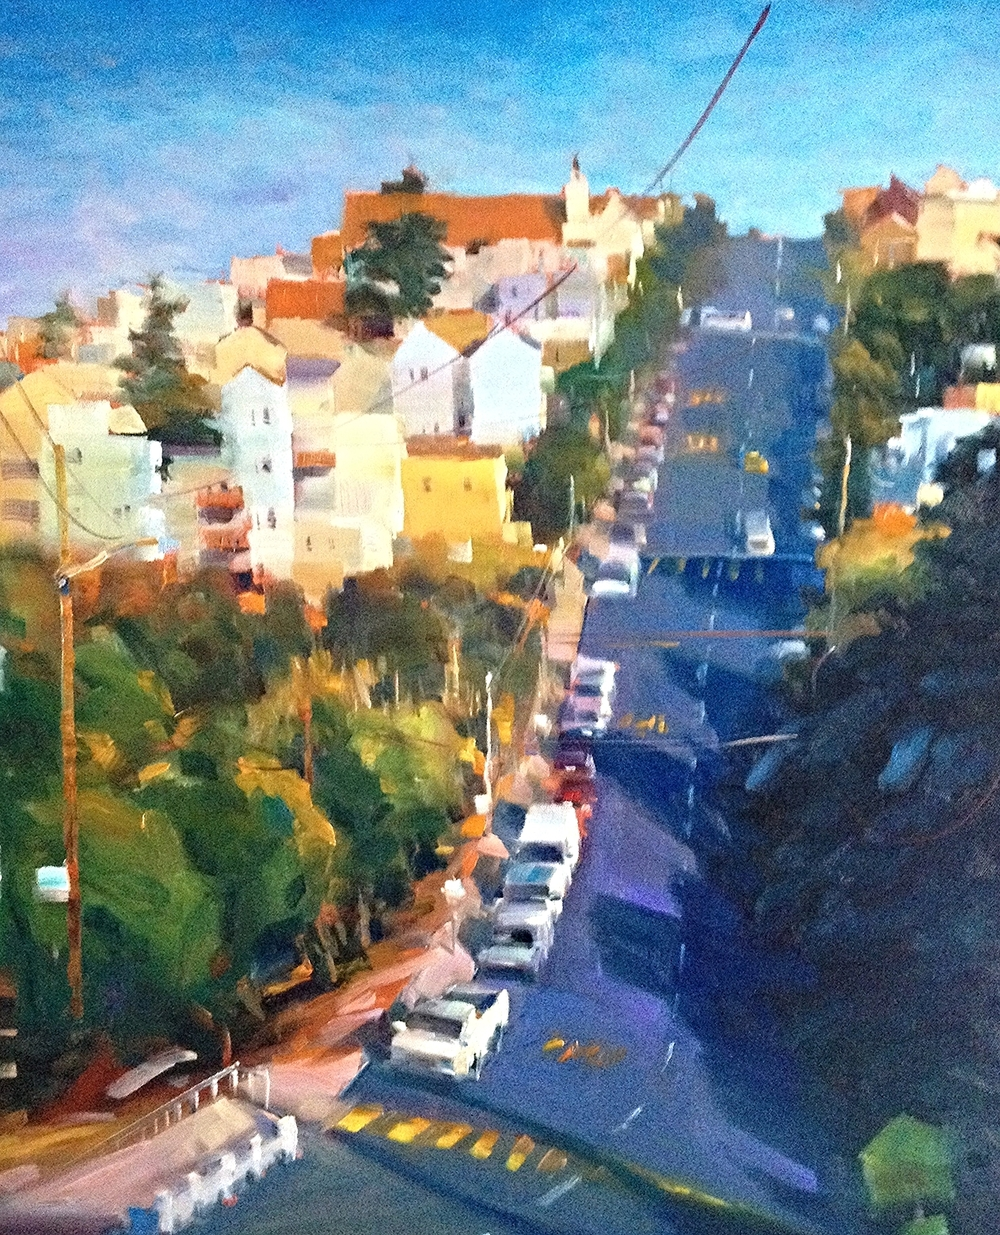 POTRERO HILLS/ AVAILABLE AT EDWARD MONTGOMERY FINE ART GALLERY